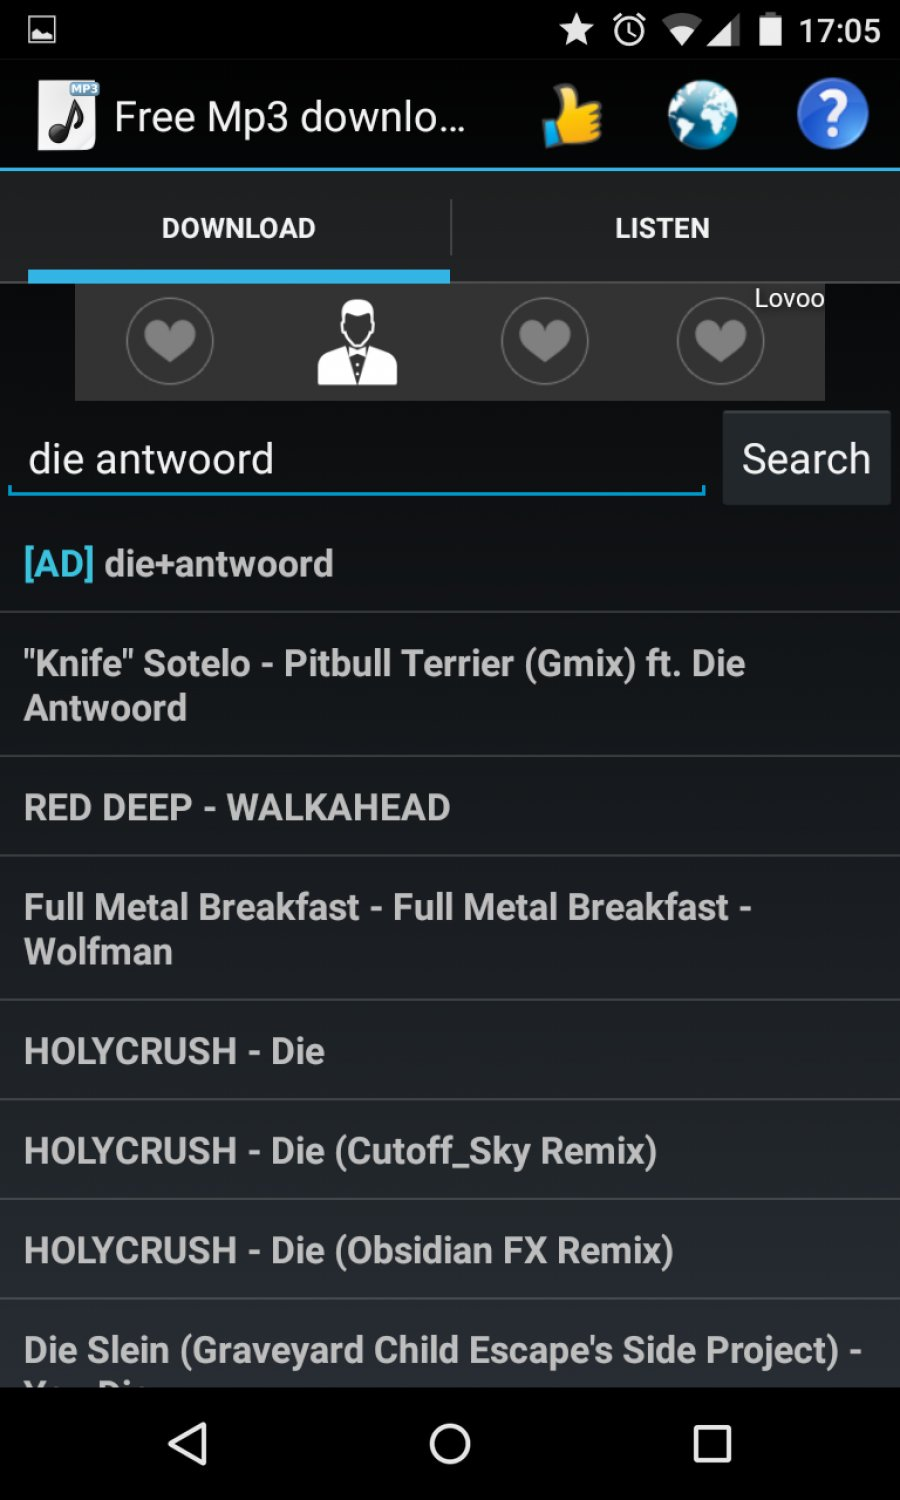 Mp3 Downloads Apk For Android - Approm.org MOD Free Full Download Unlimited Money Gold Unlocked